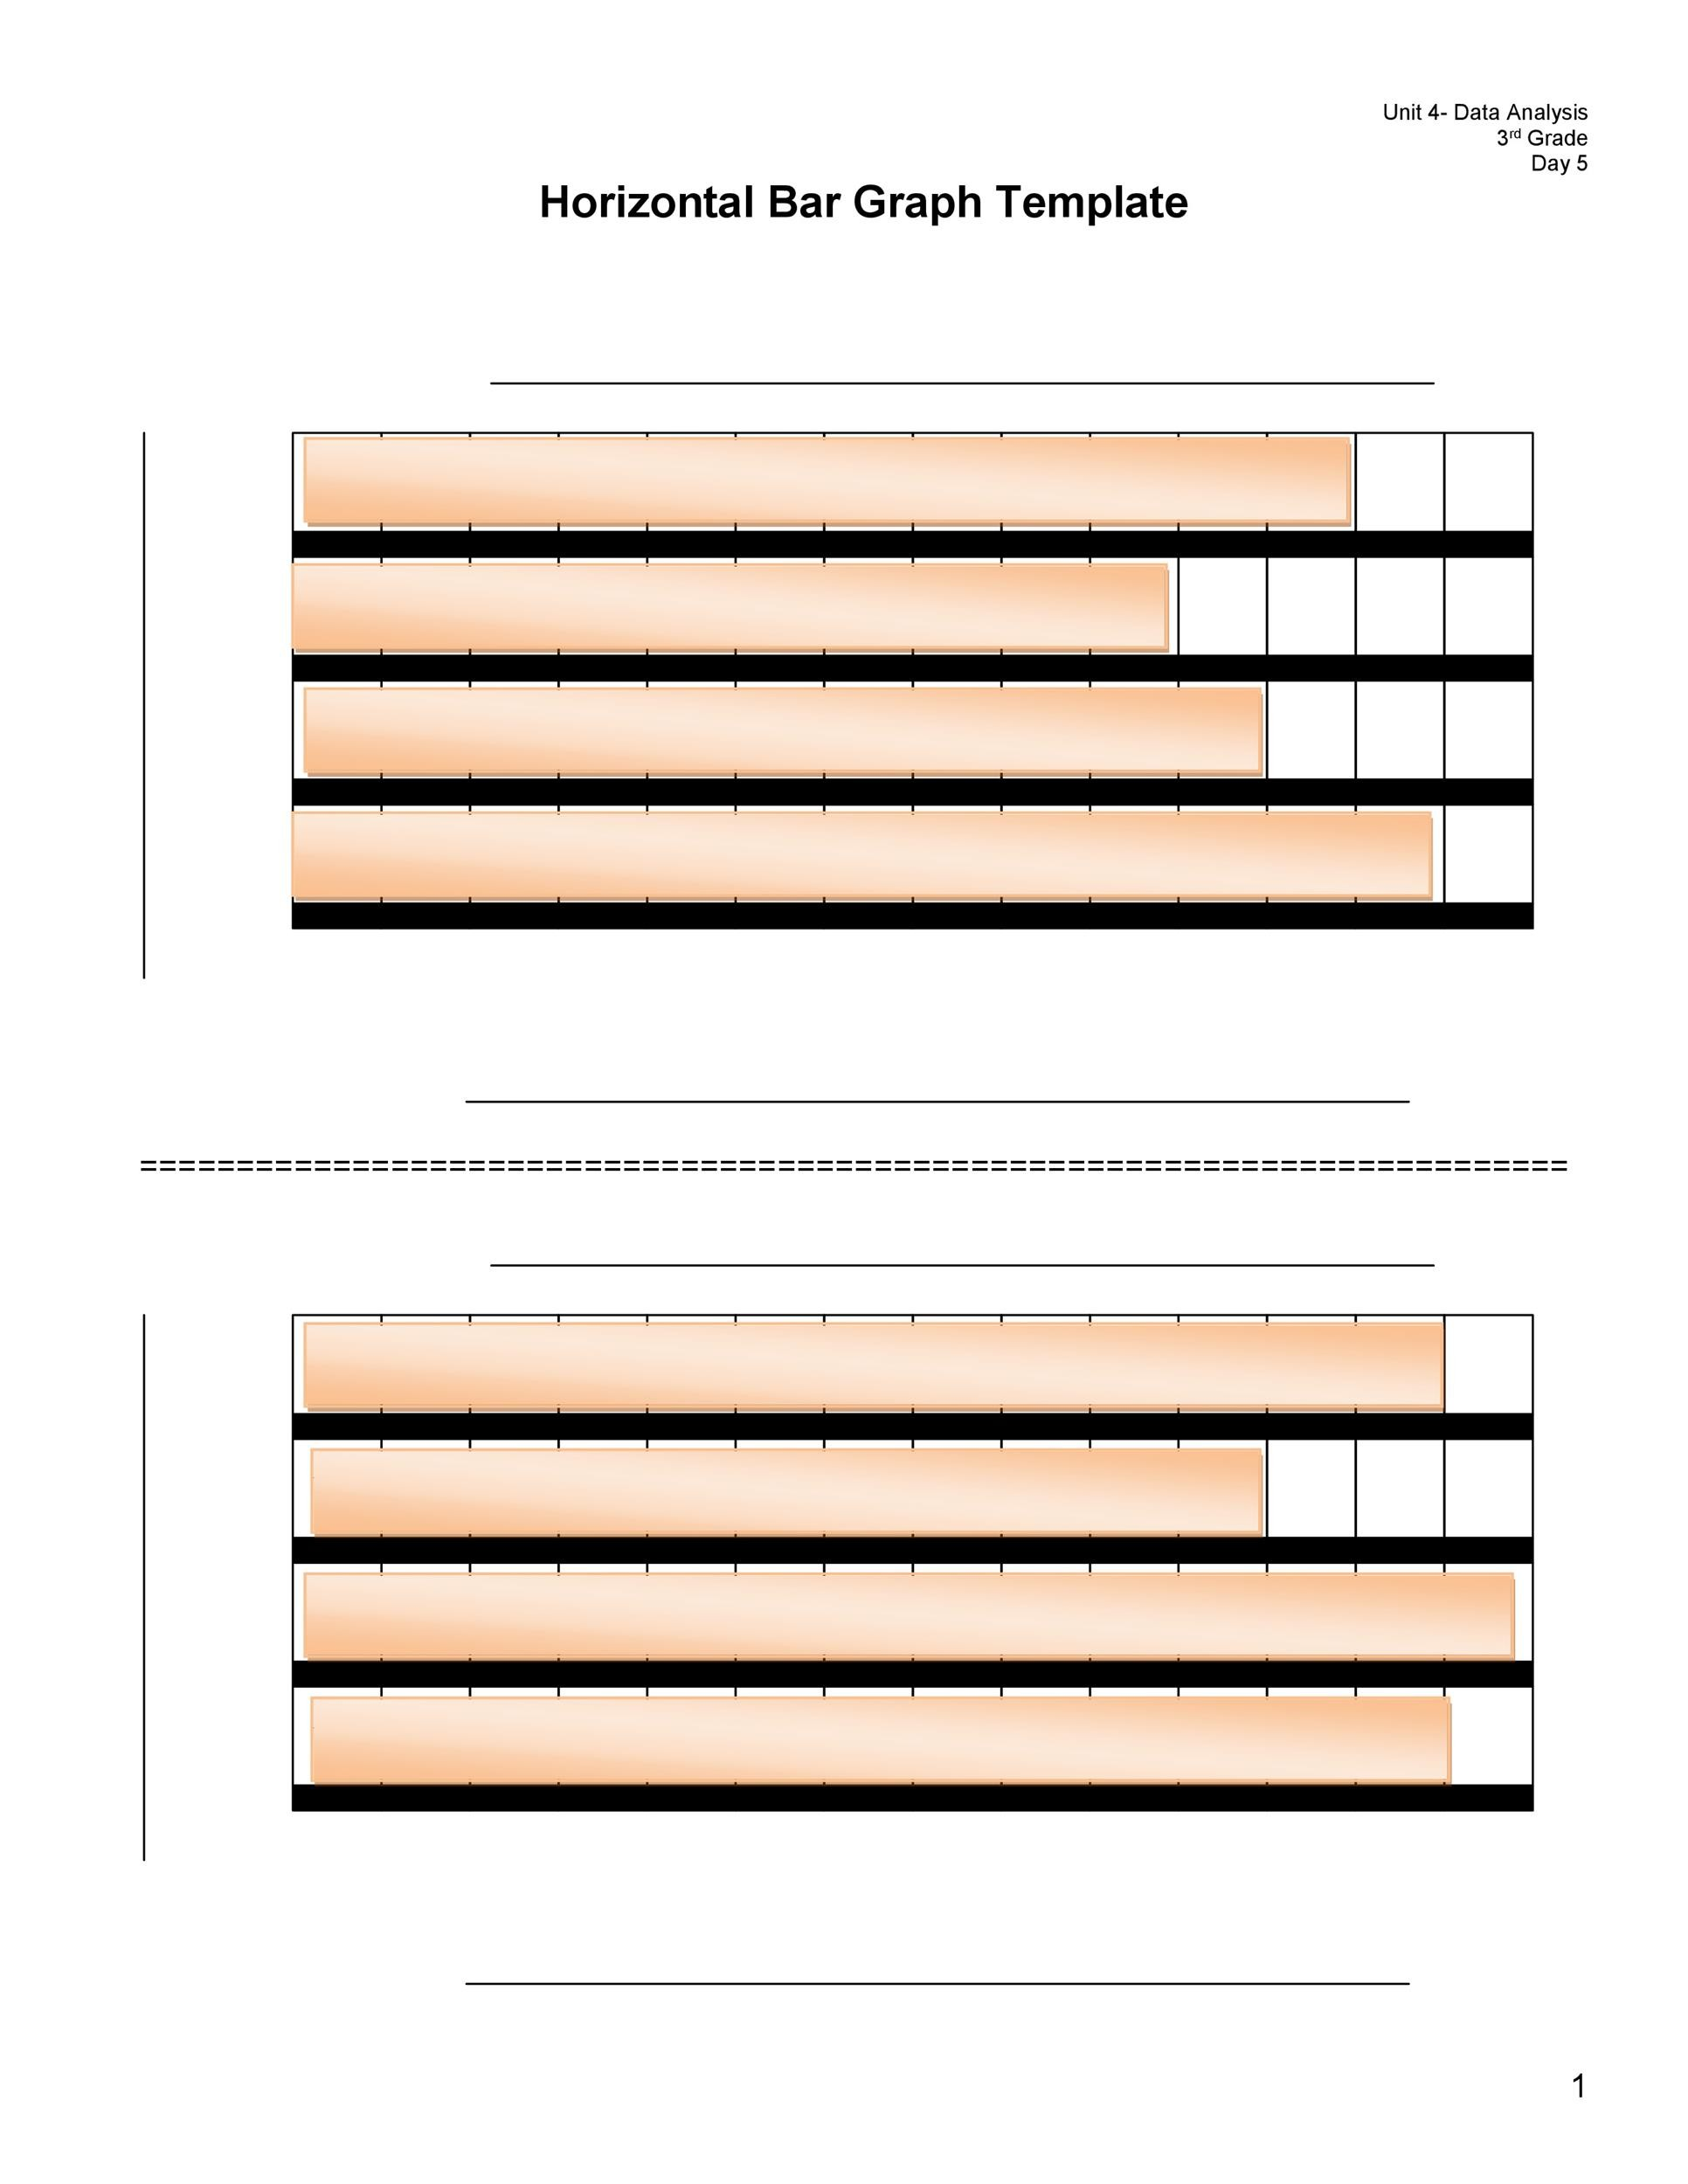 Horizontal Bar Graph Template